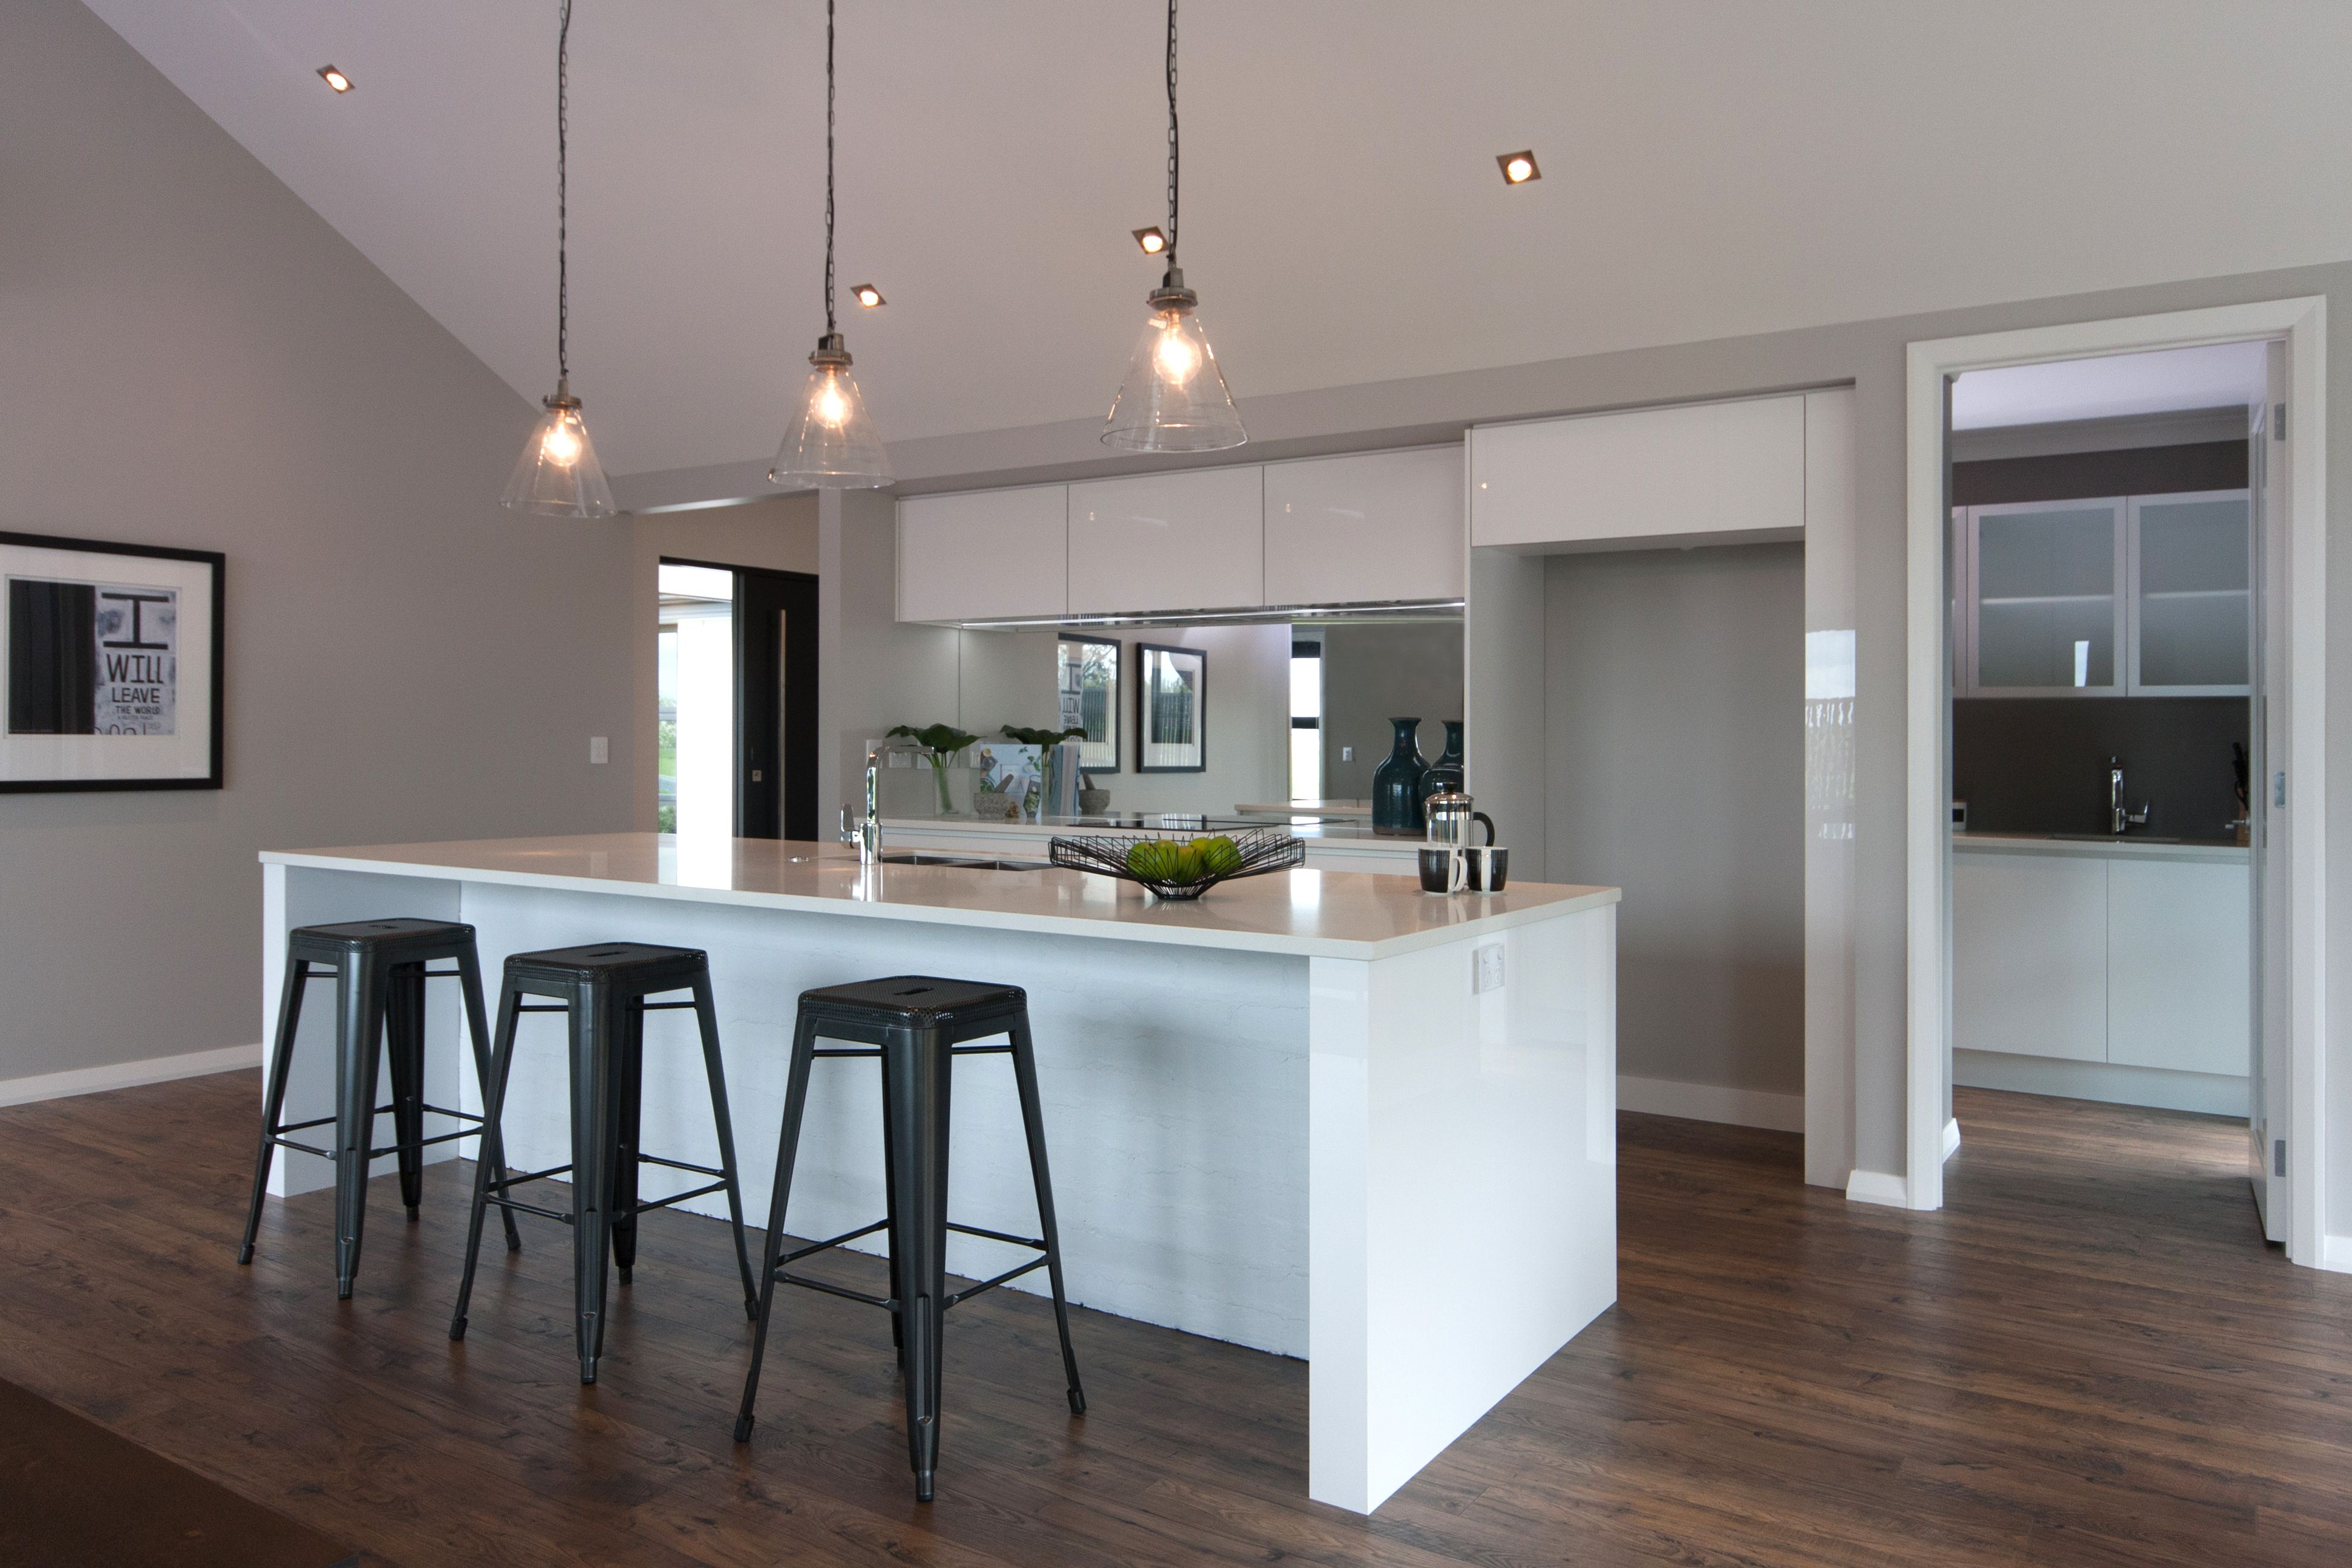 The Kitchen In Our Hamilton Showhome Featuring A Mirrored Splash Back And Scullery Along The